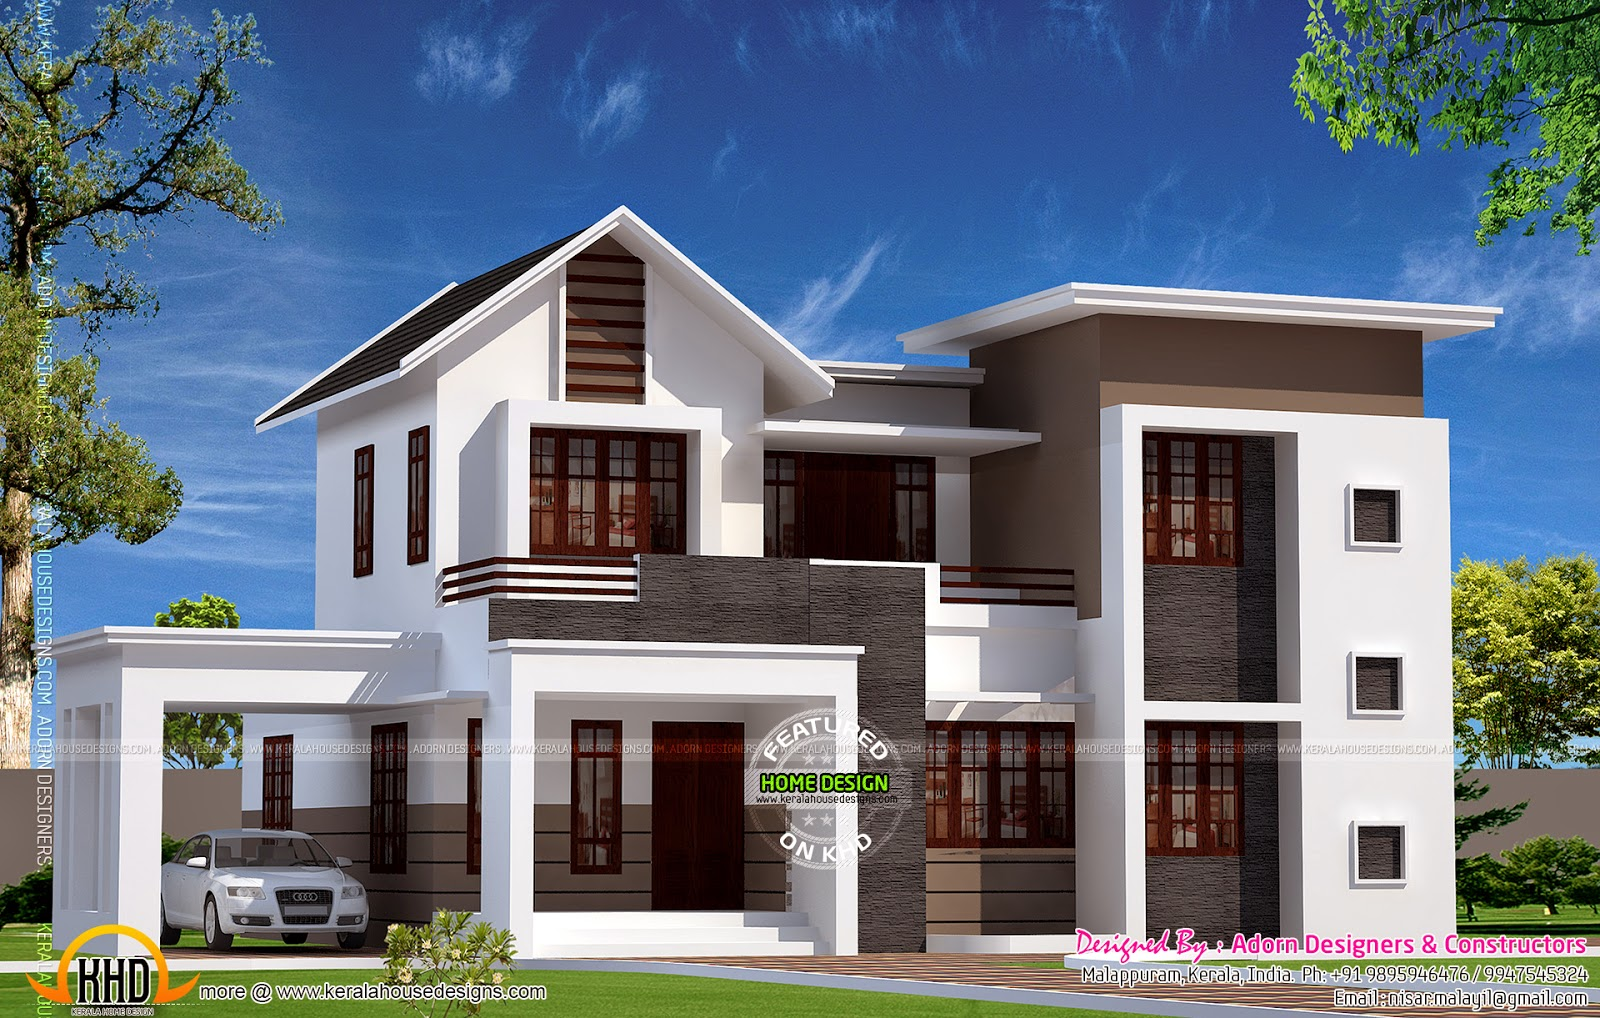 New house design in 1900 sq feet kerala home design and for Best house design usa